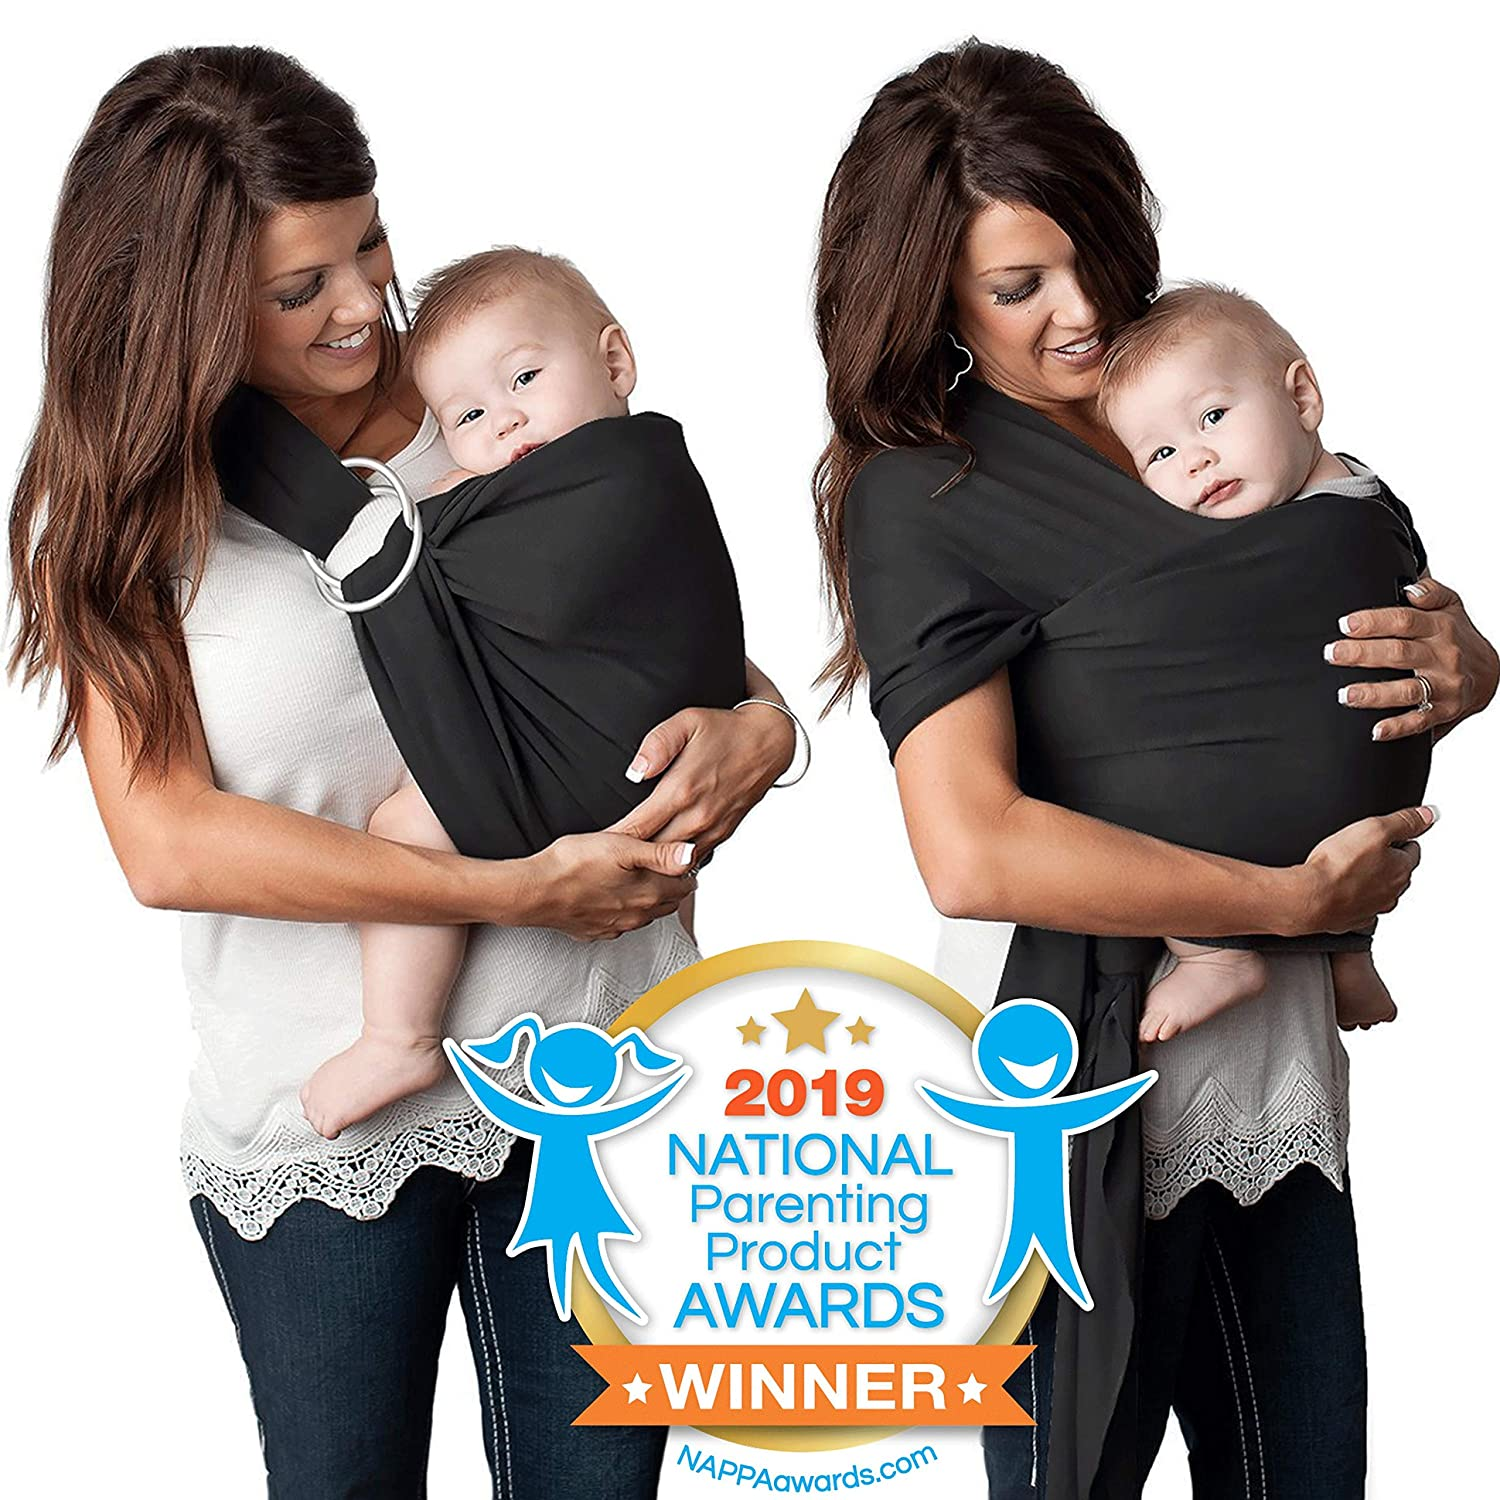 4 in 1 Baby Carrier Wrap and Baby Sling by Kids N' Such | Black Cotton | Use as a Postpartum Belt and Nursing Cover with Free Carrying Pouch | Best Baby Shower Gift for Boys or Girls